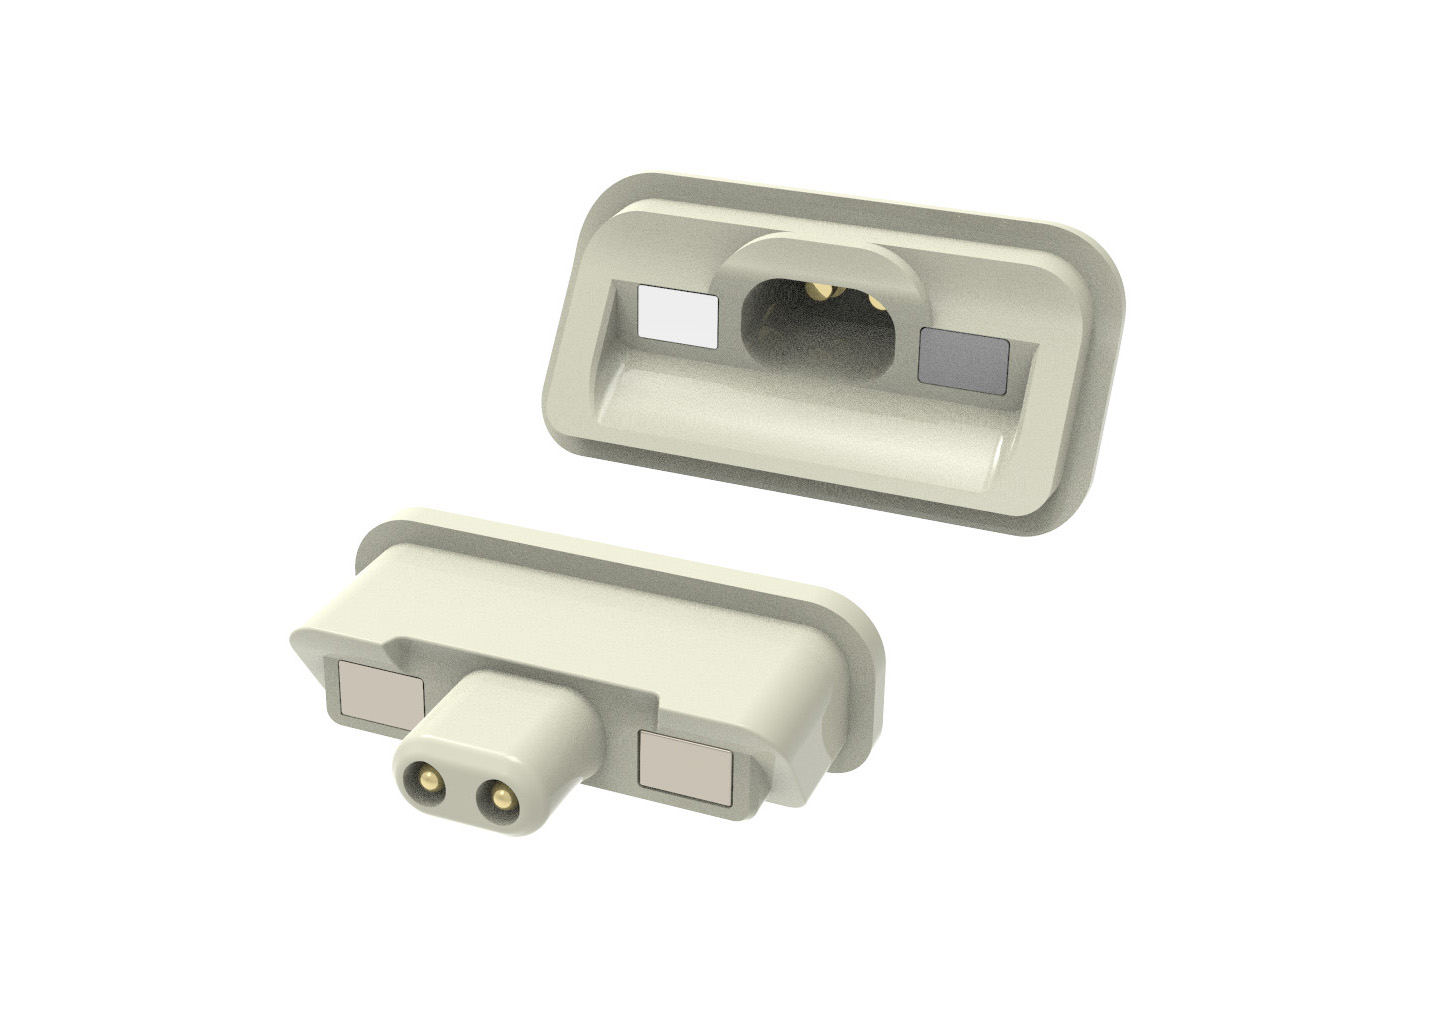 pogo pin magnetic charging solutions for medical devices